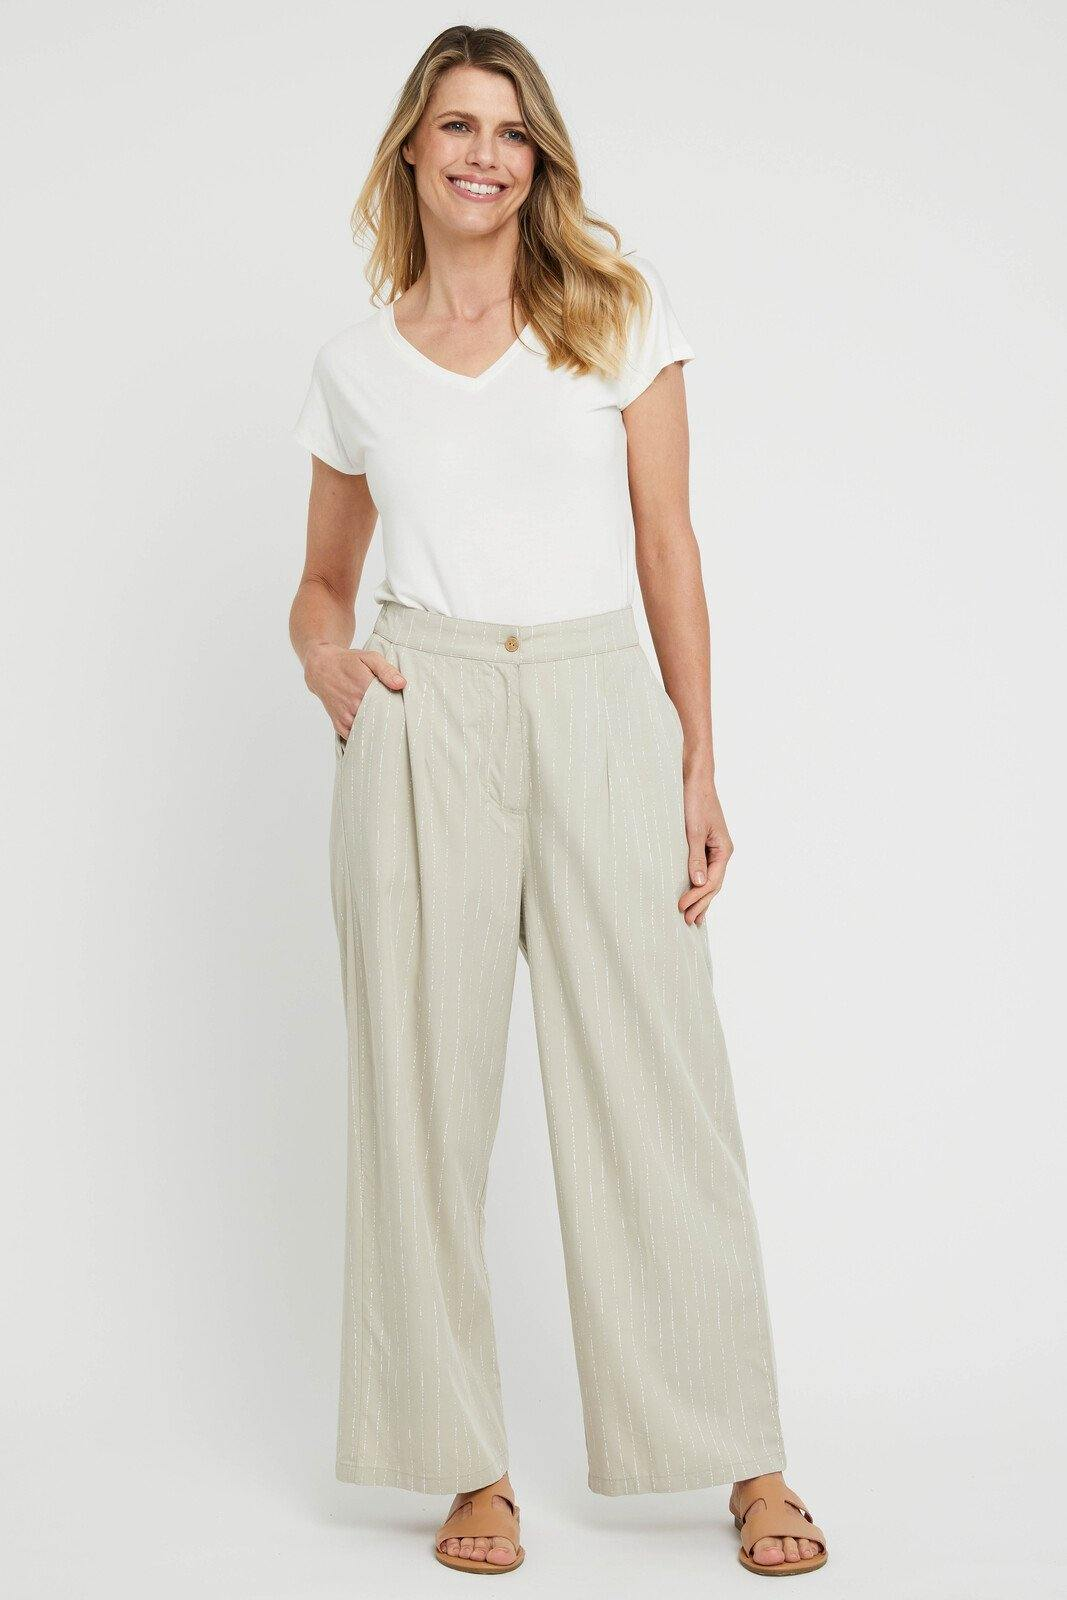 Woven Wide Leg Pant in Organic Pinstripe by Bamboo Body - Weekends on 2nd Ave